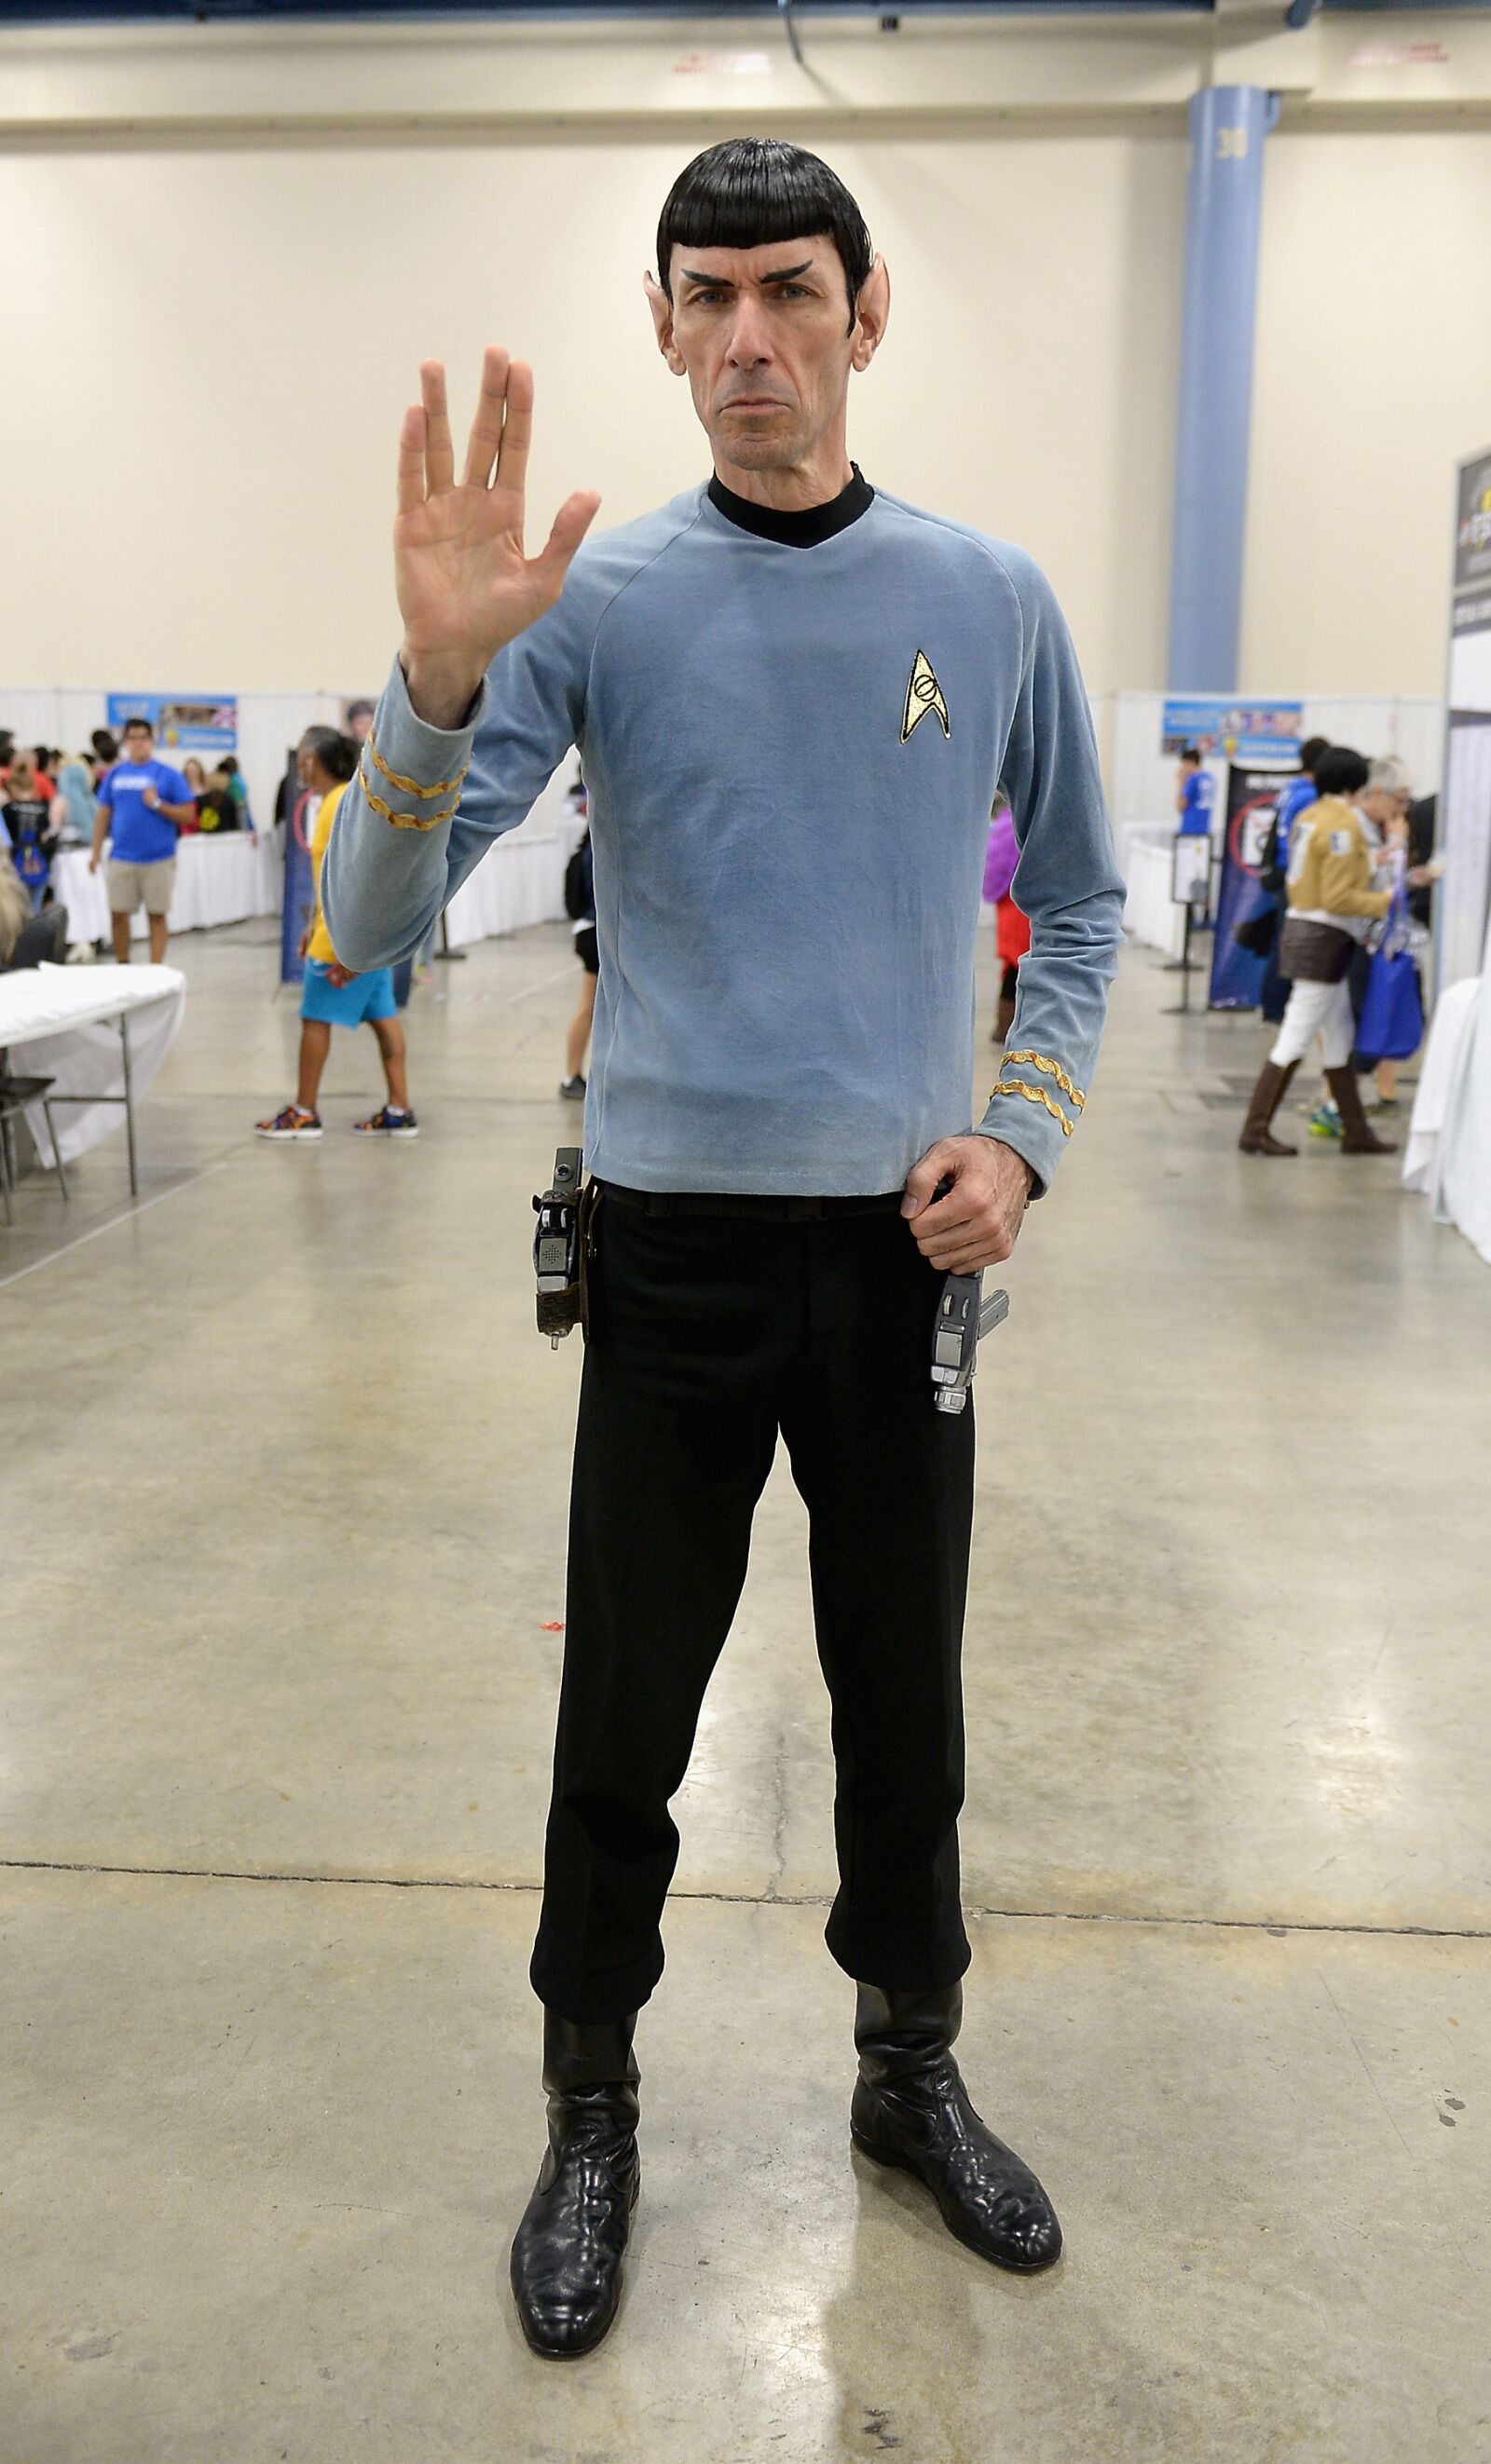 MIAMI, FL - JULY 01: Spock Vegas Paul Forest attends Florida Supercon on July 1, 2016 in Miami, Florida. (Photo by Gustavo Caballero/Getty Images)